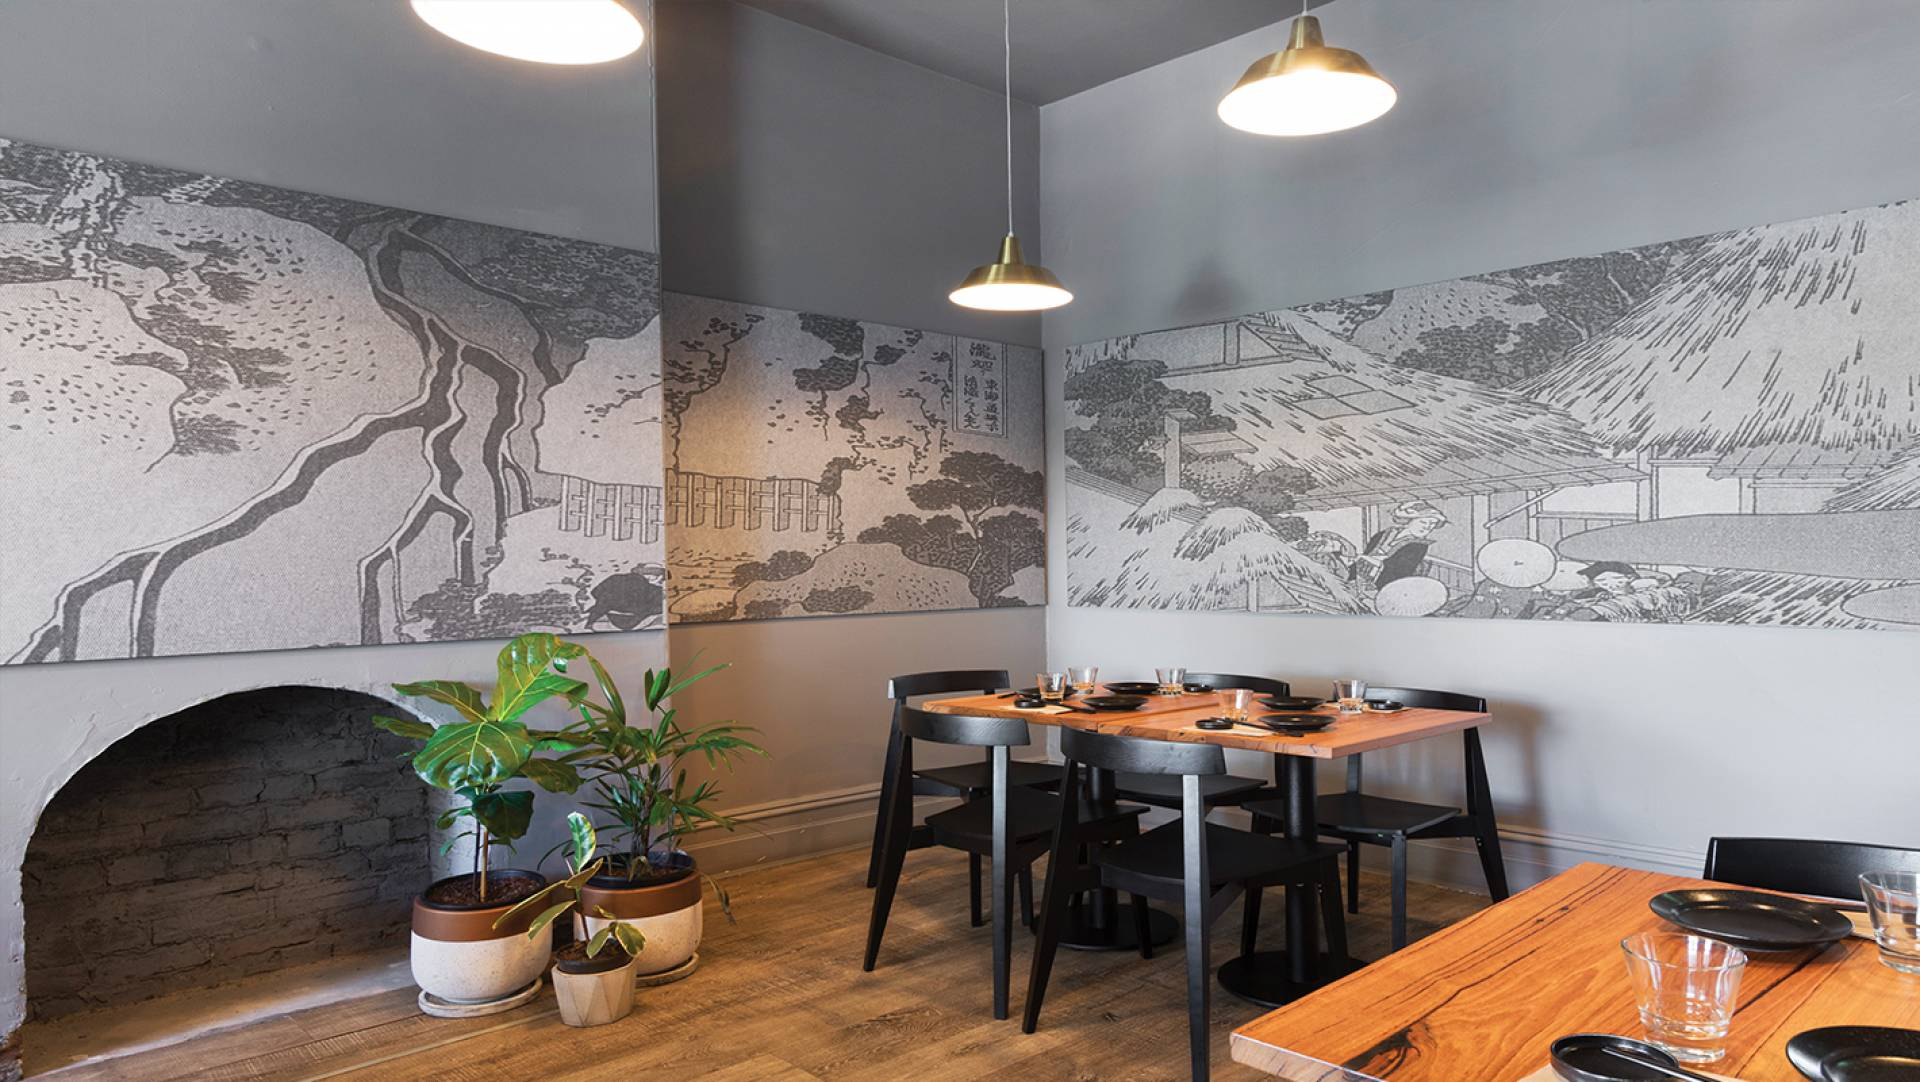 Restaurant Design Melbourne - The Modern Eatery The House of Aburi Sushi